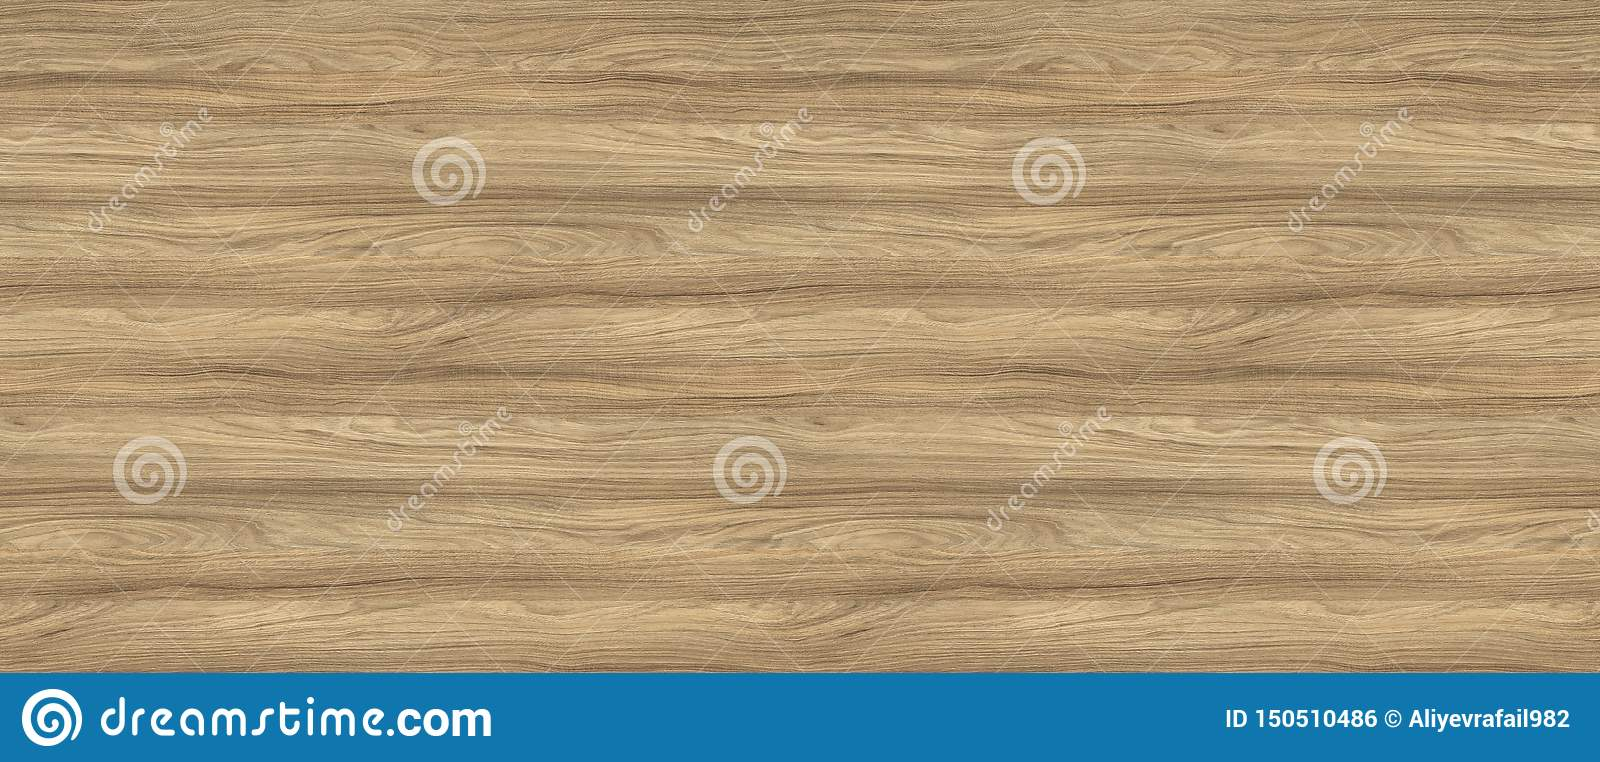 Natural wood texture for interior